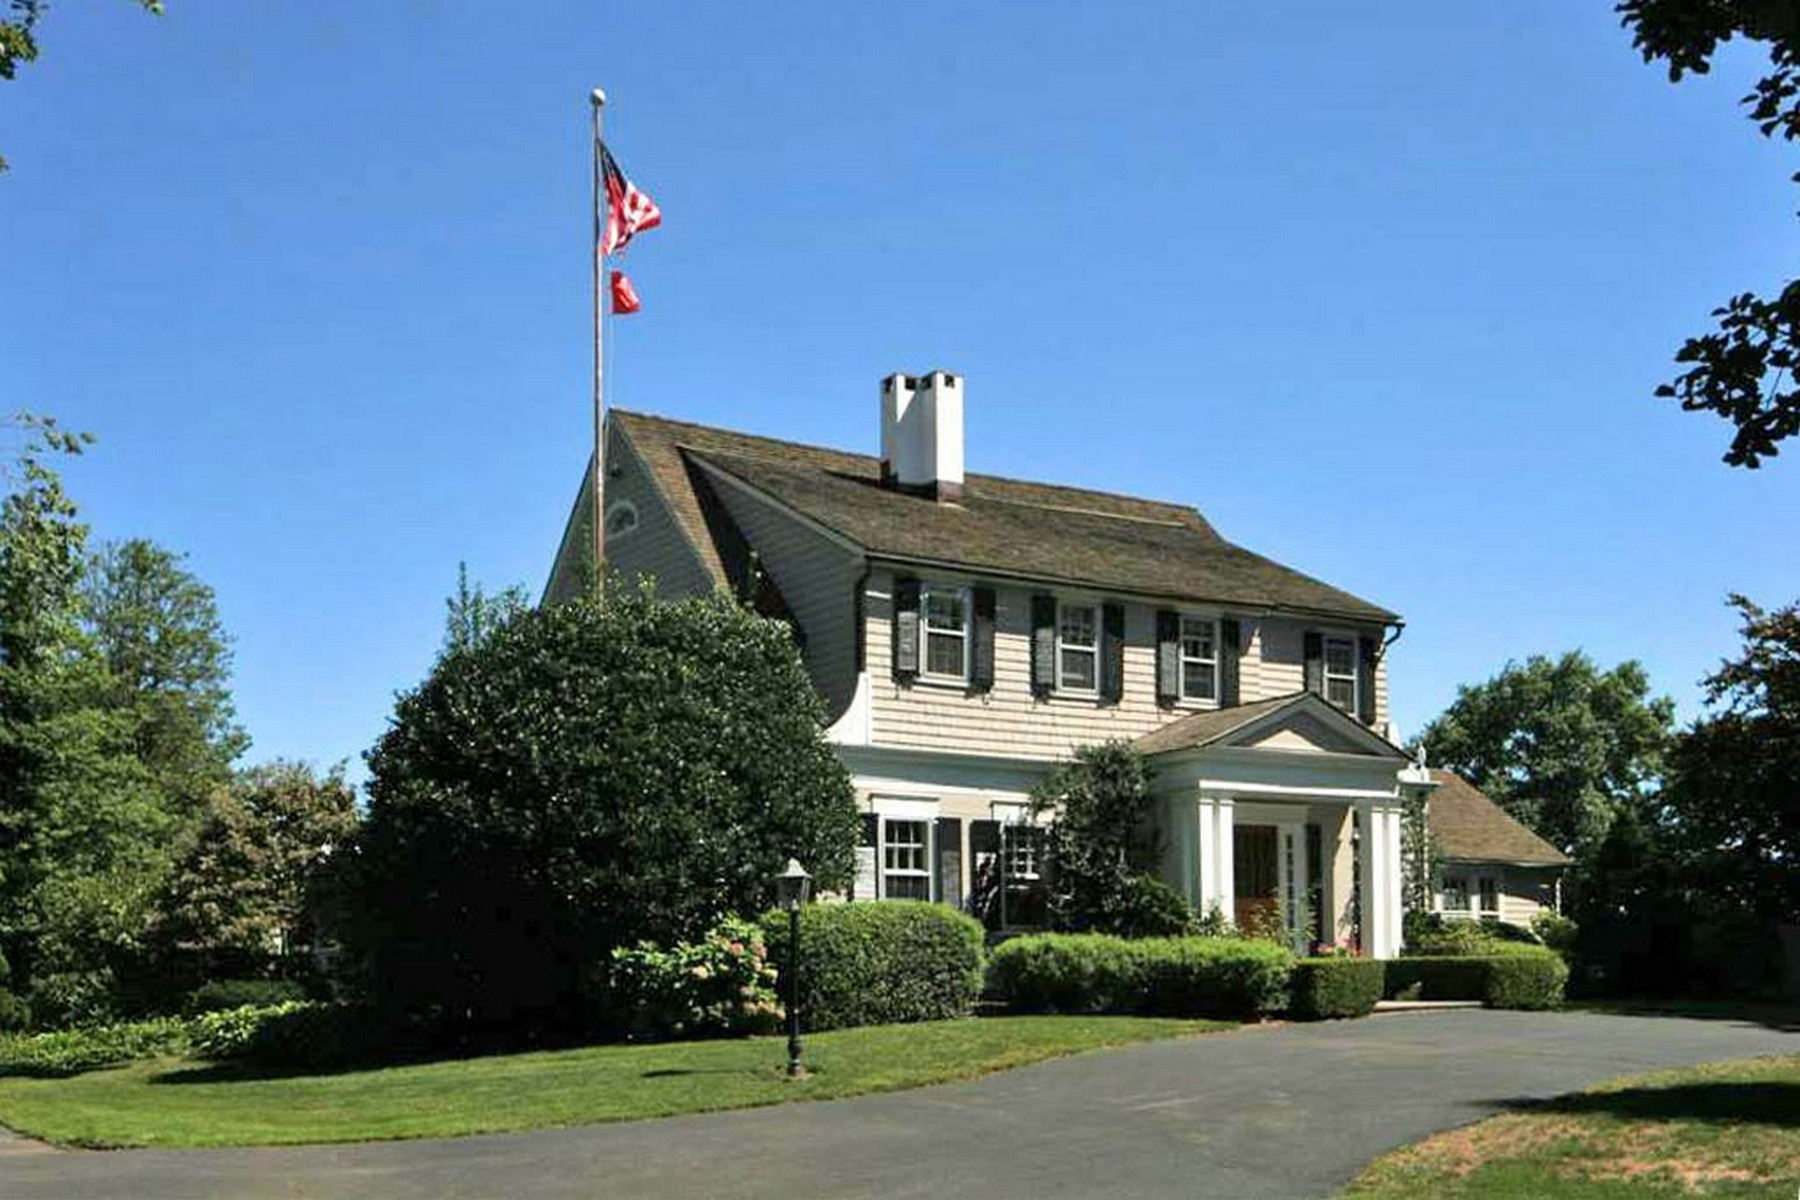 Maison unifamiliale pour l Vente à Black Rock Waterfront 40 Anchorage Drive Bridgeport, Connecticut, 06605 États-Unis